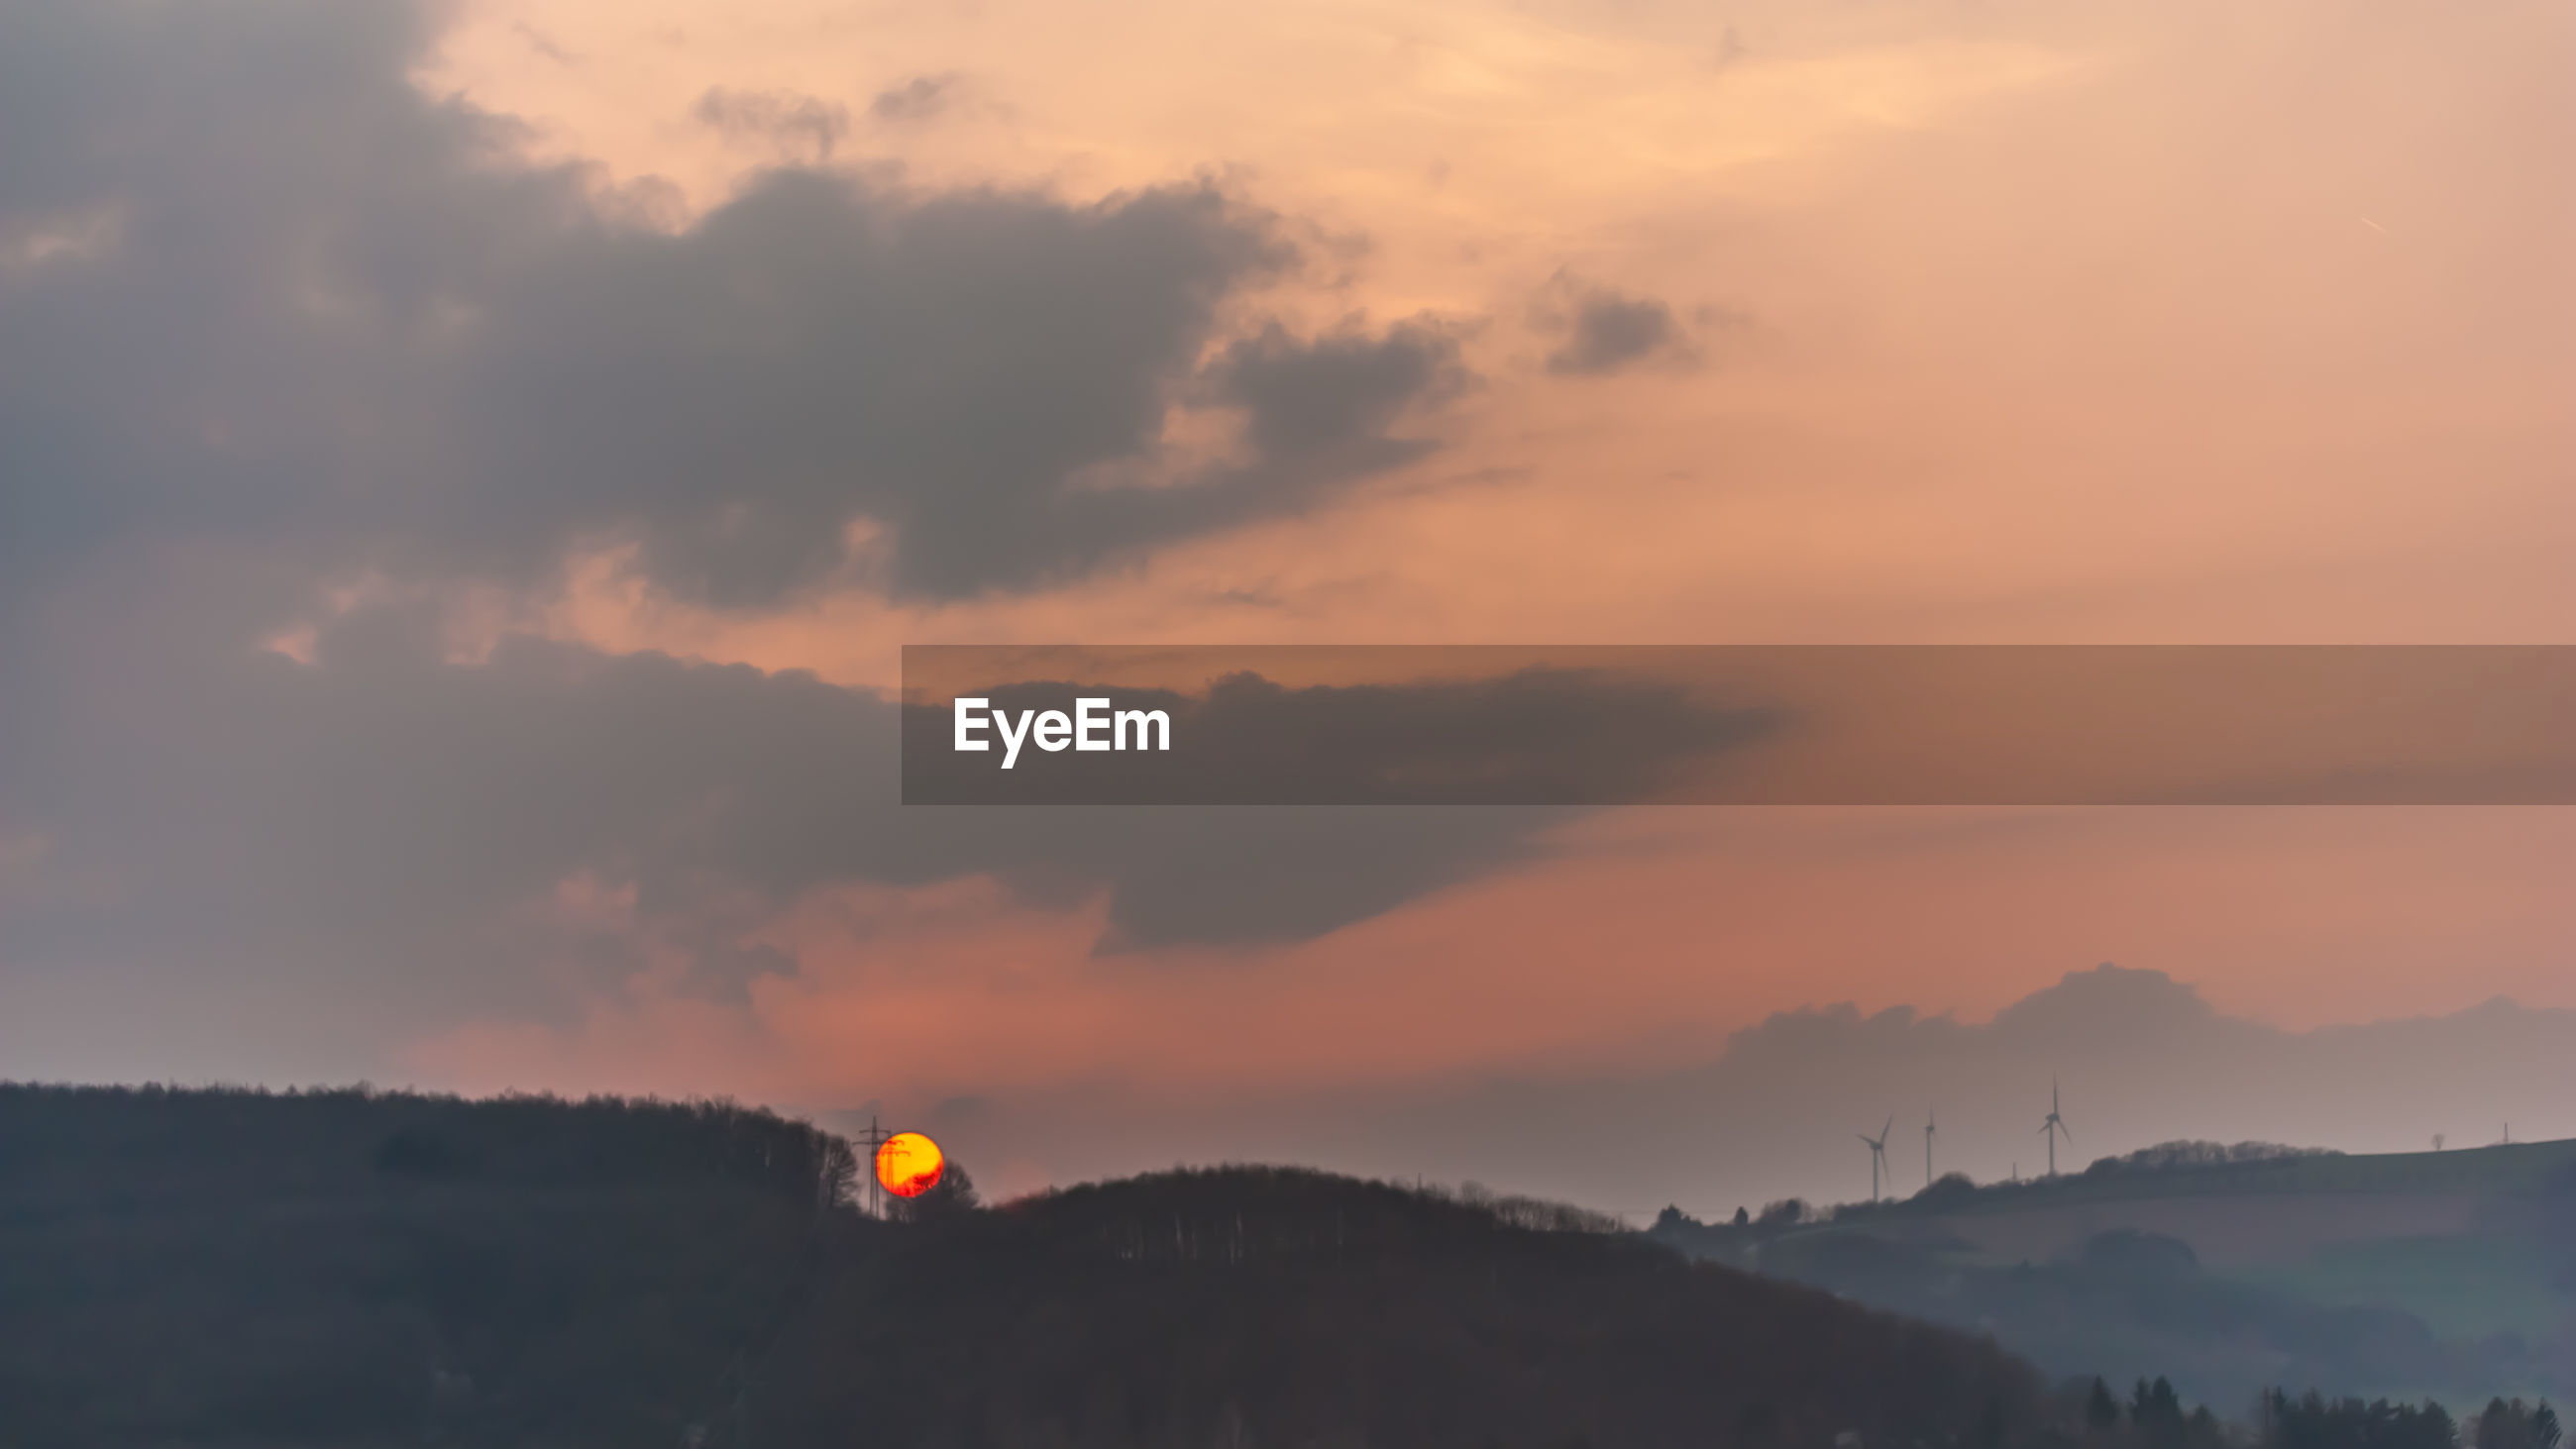 SCENIC VIEW OF SILHOUETTE MOUNTAINS AGAINST DRAMATIC SKY